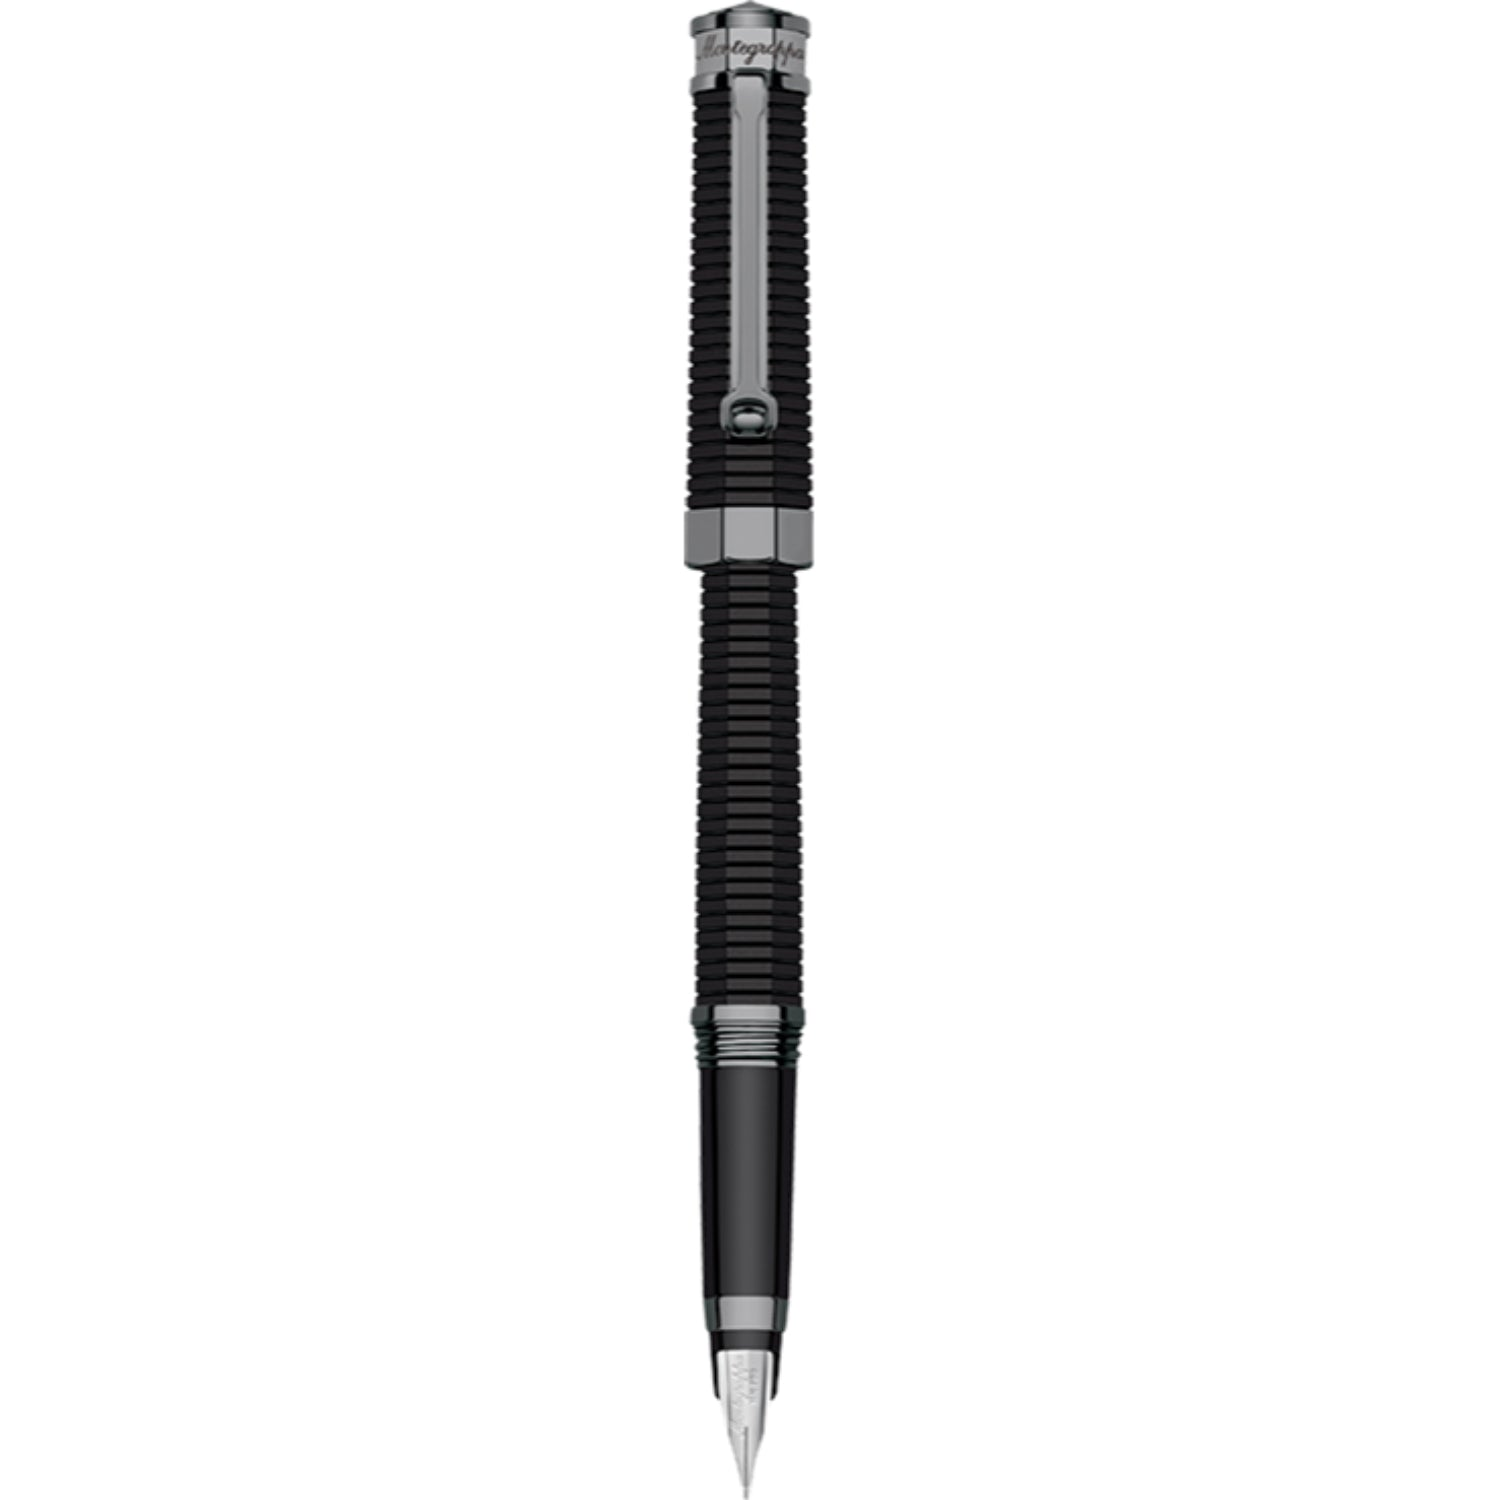 NeroUno Linea Fountain Pen, Gun Metal, Broad